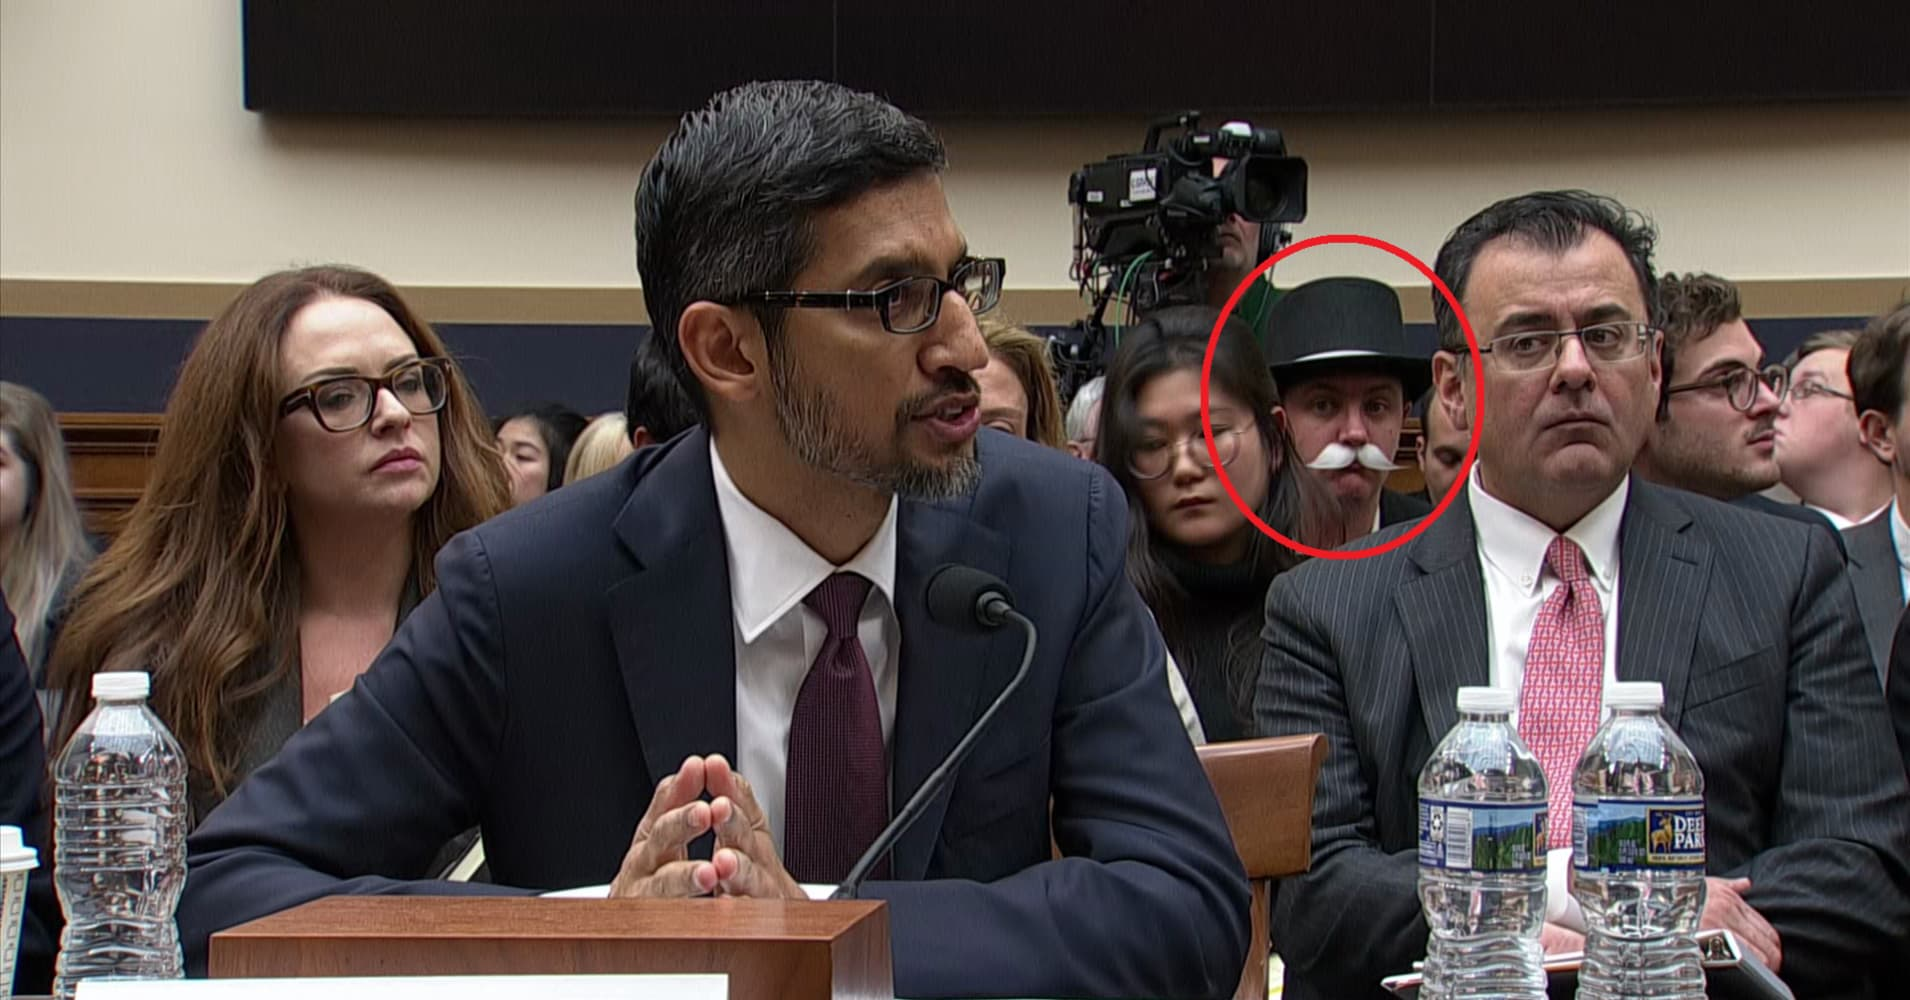 'Monopoly Man' returns to congress for Google CEO Pichai's hearing